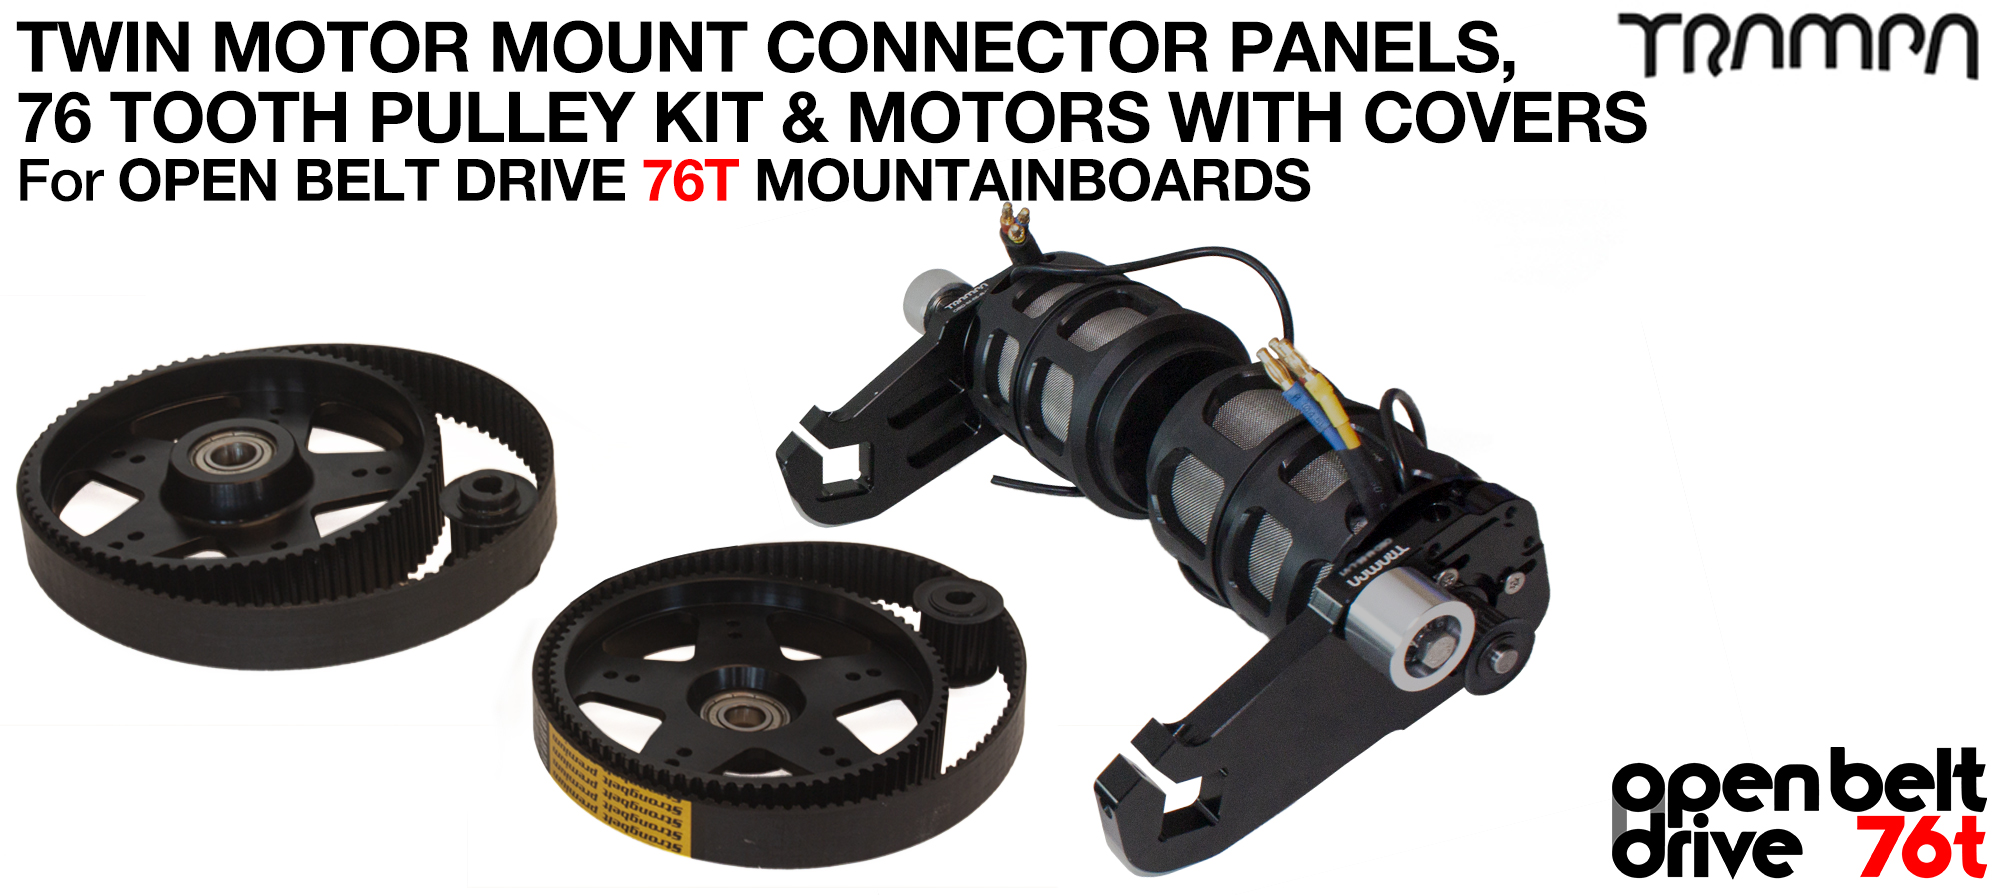 76T OPEN BELT DRIVE Motor Mount & 76T Pulley Kit with MOTOR & Filters - TWIN